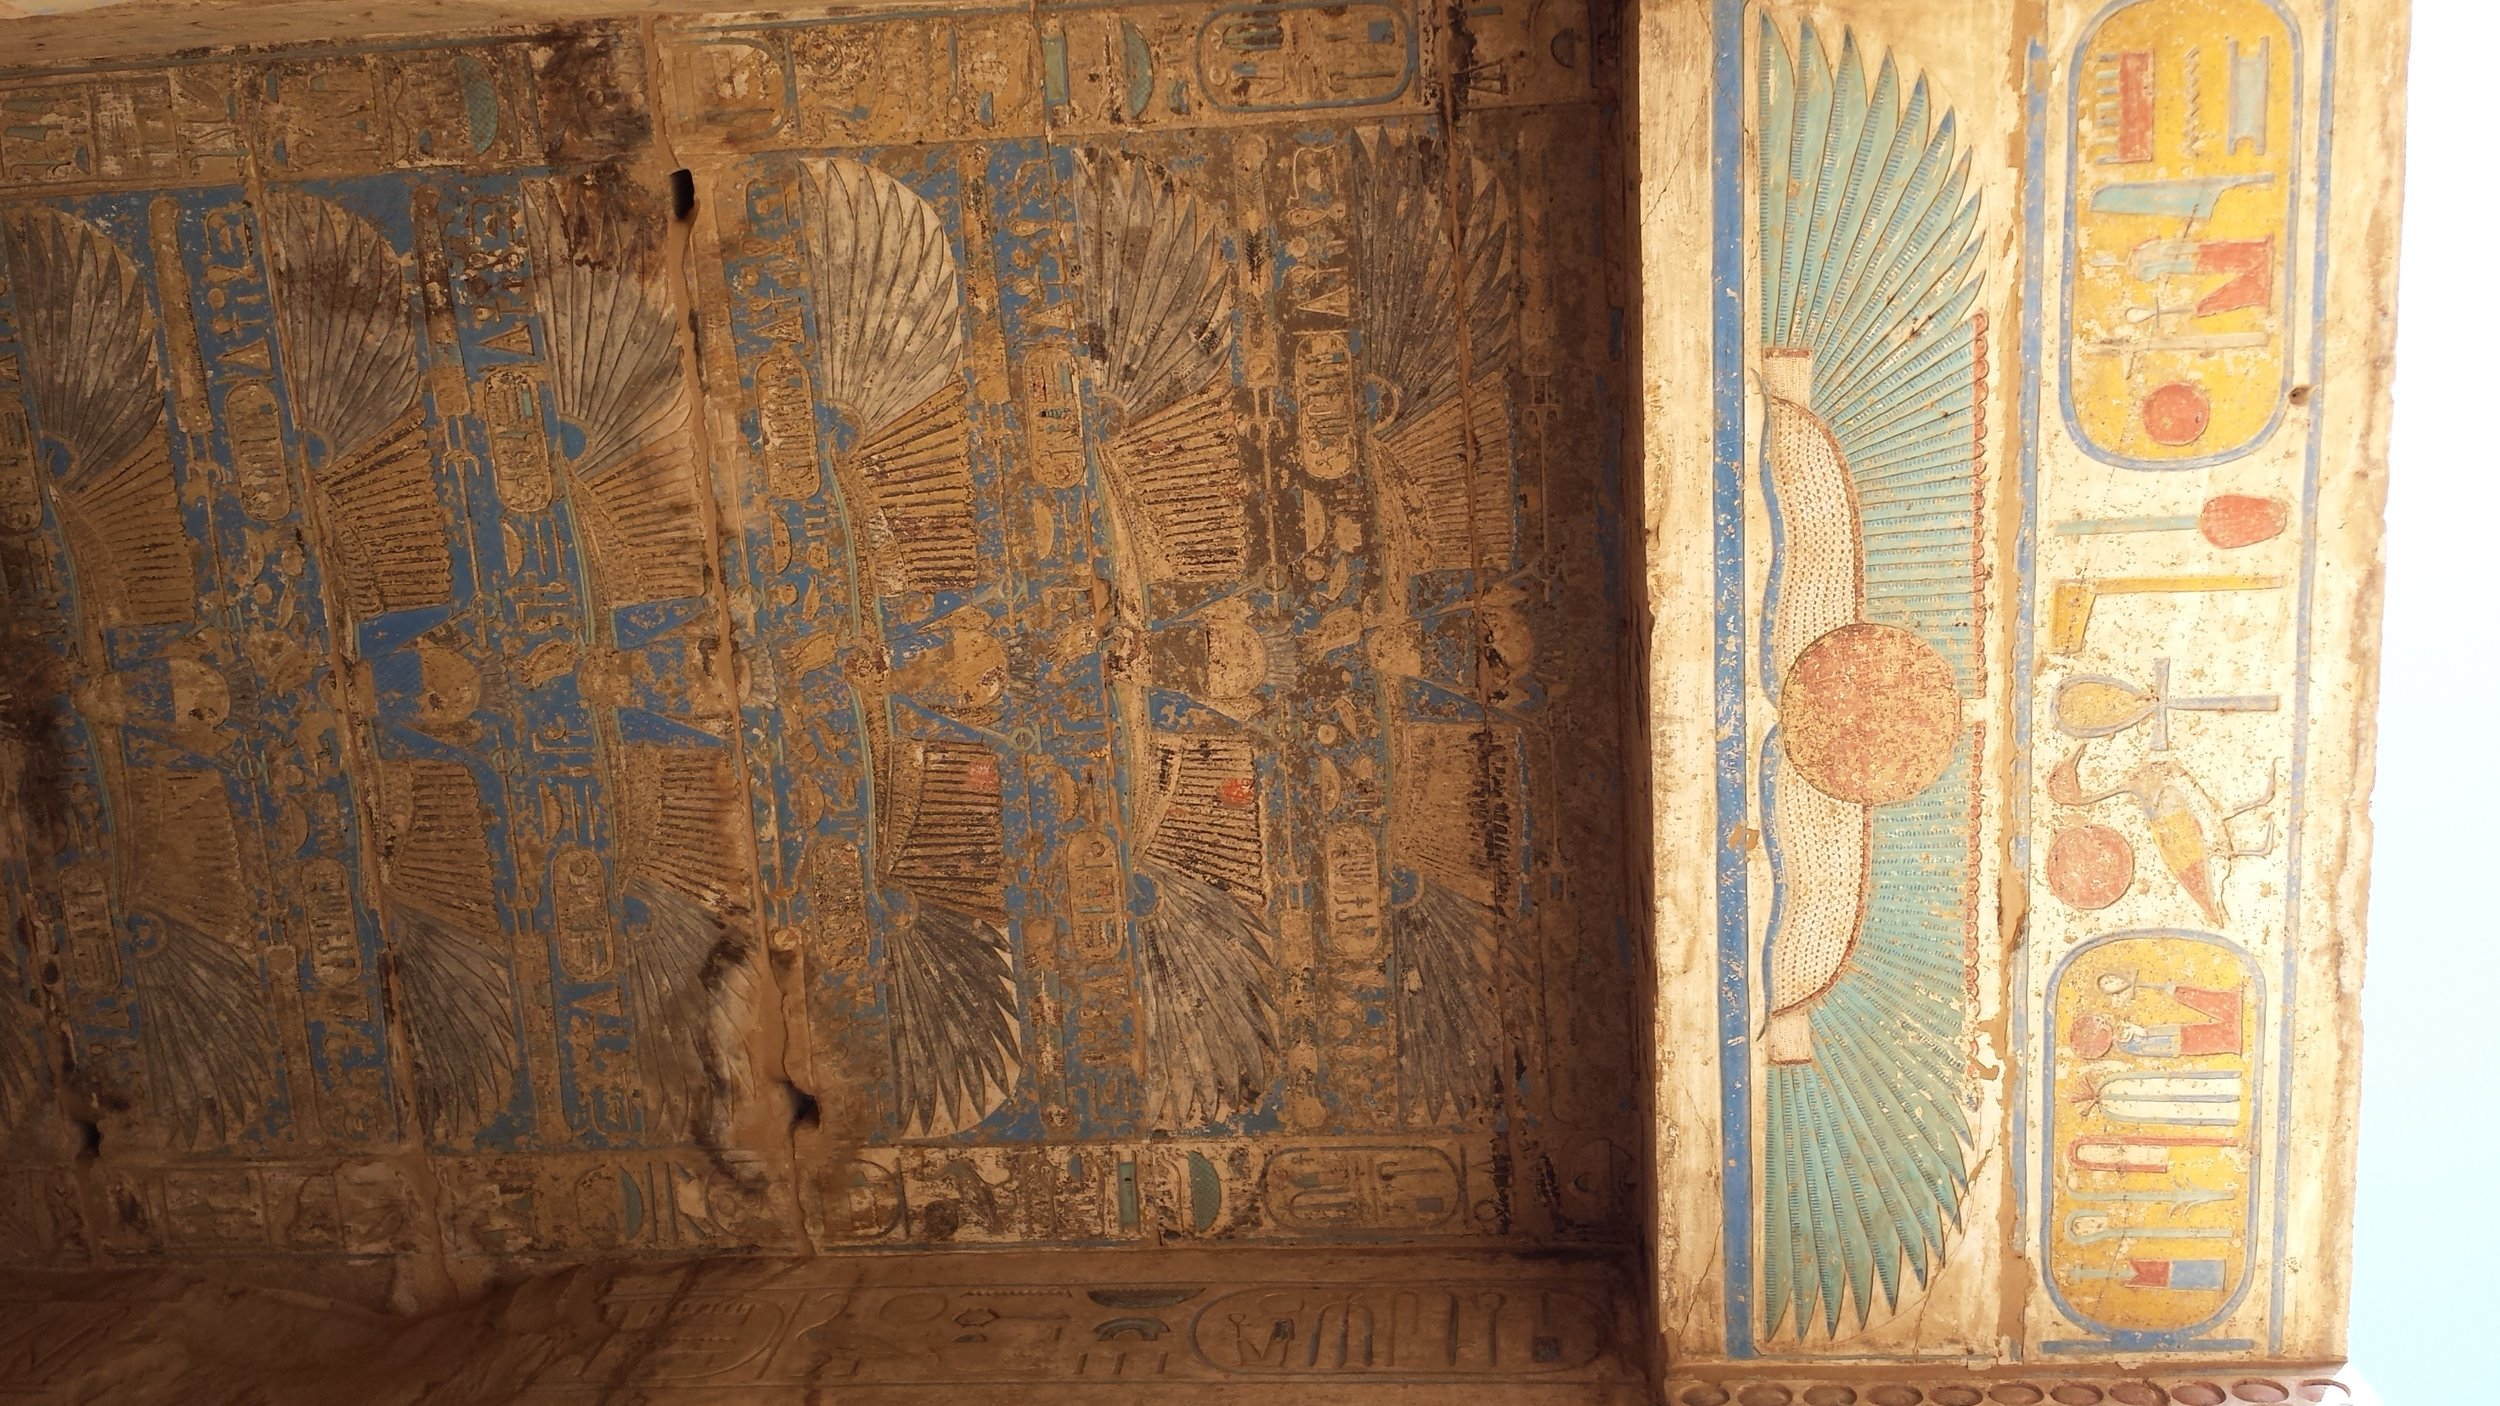 The ceiling of Habu temple, still rich with color after all these years.